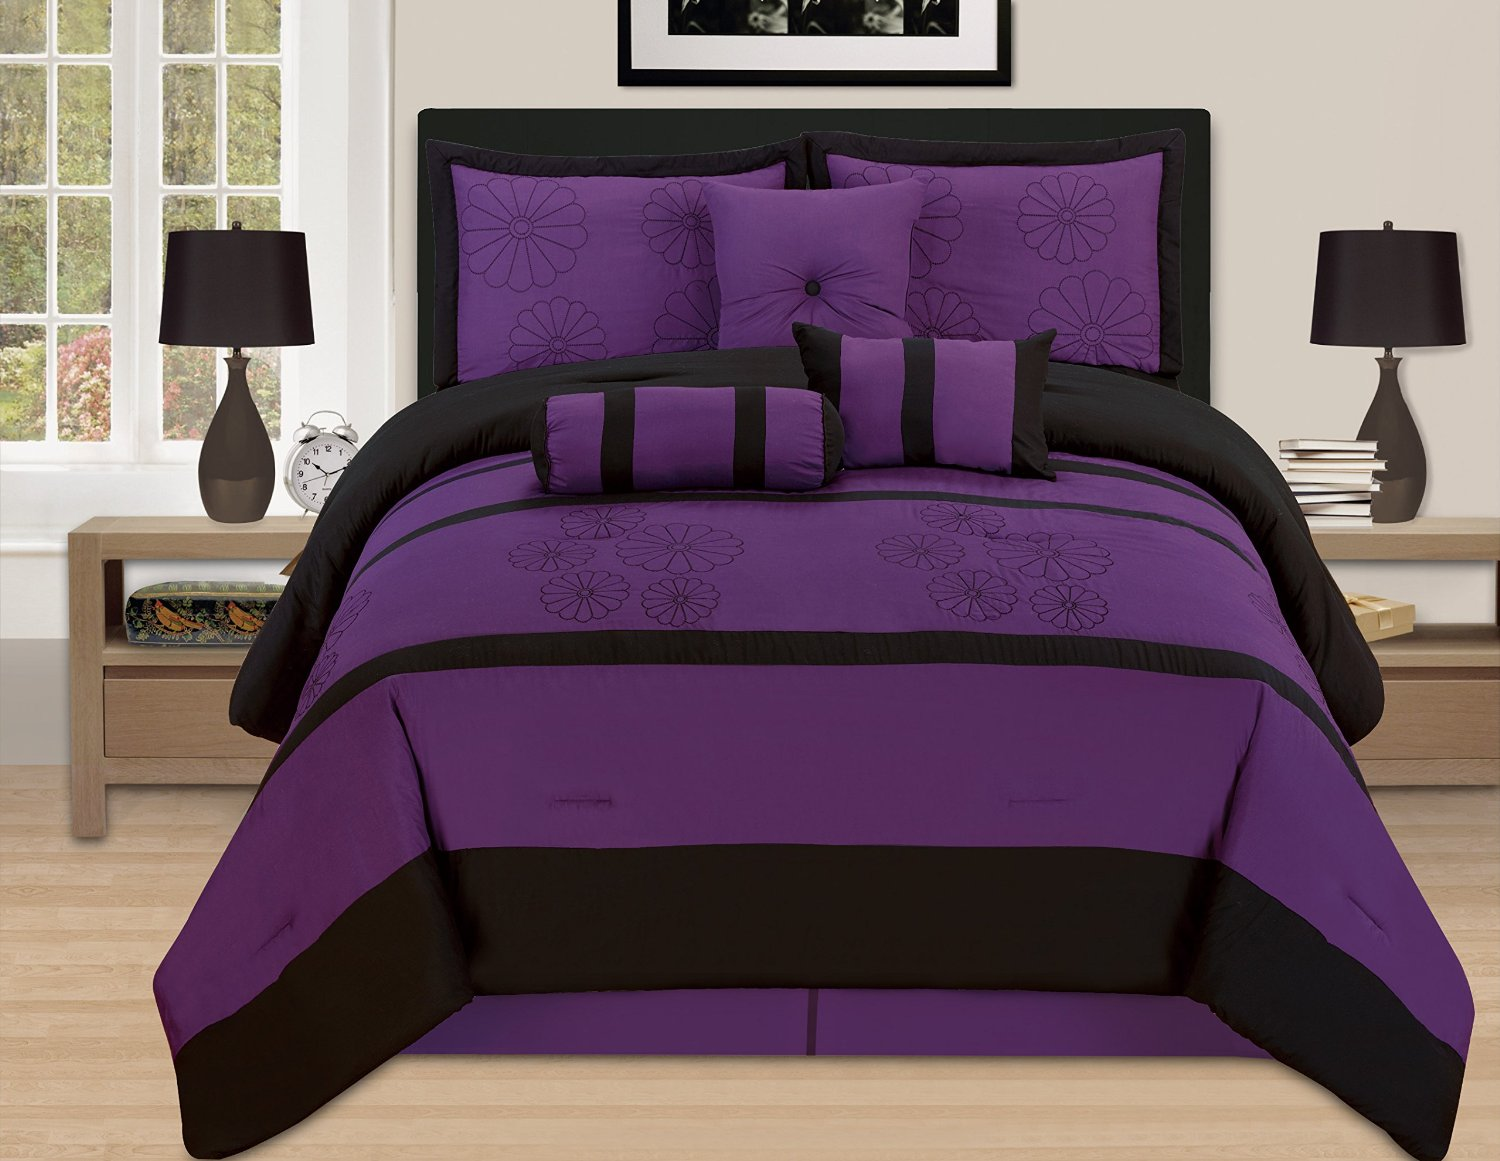 Purple Rose Comforter Set | Comforter Set Purple | Purple Comforter Sets